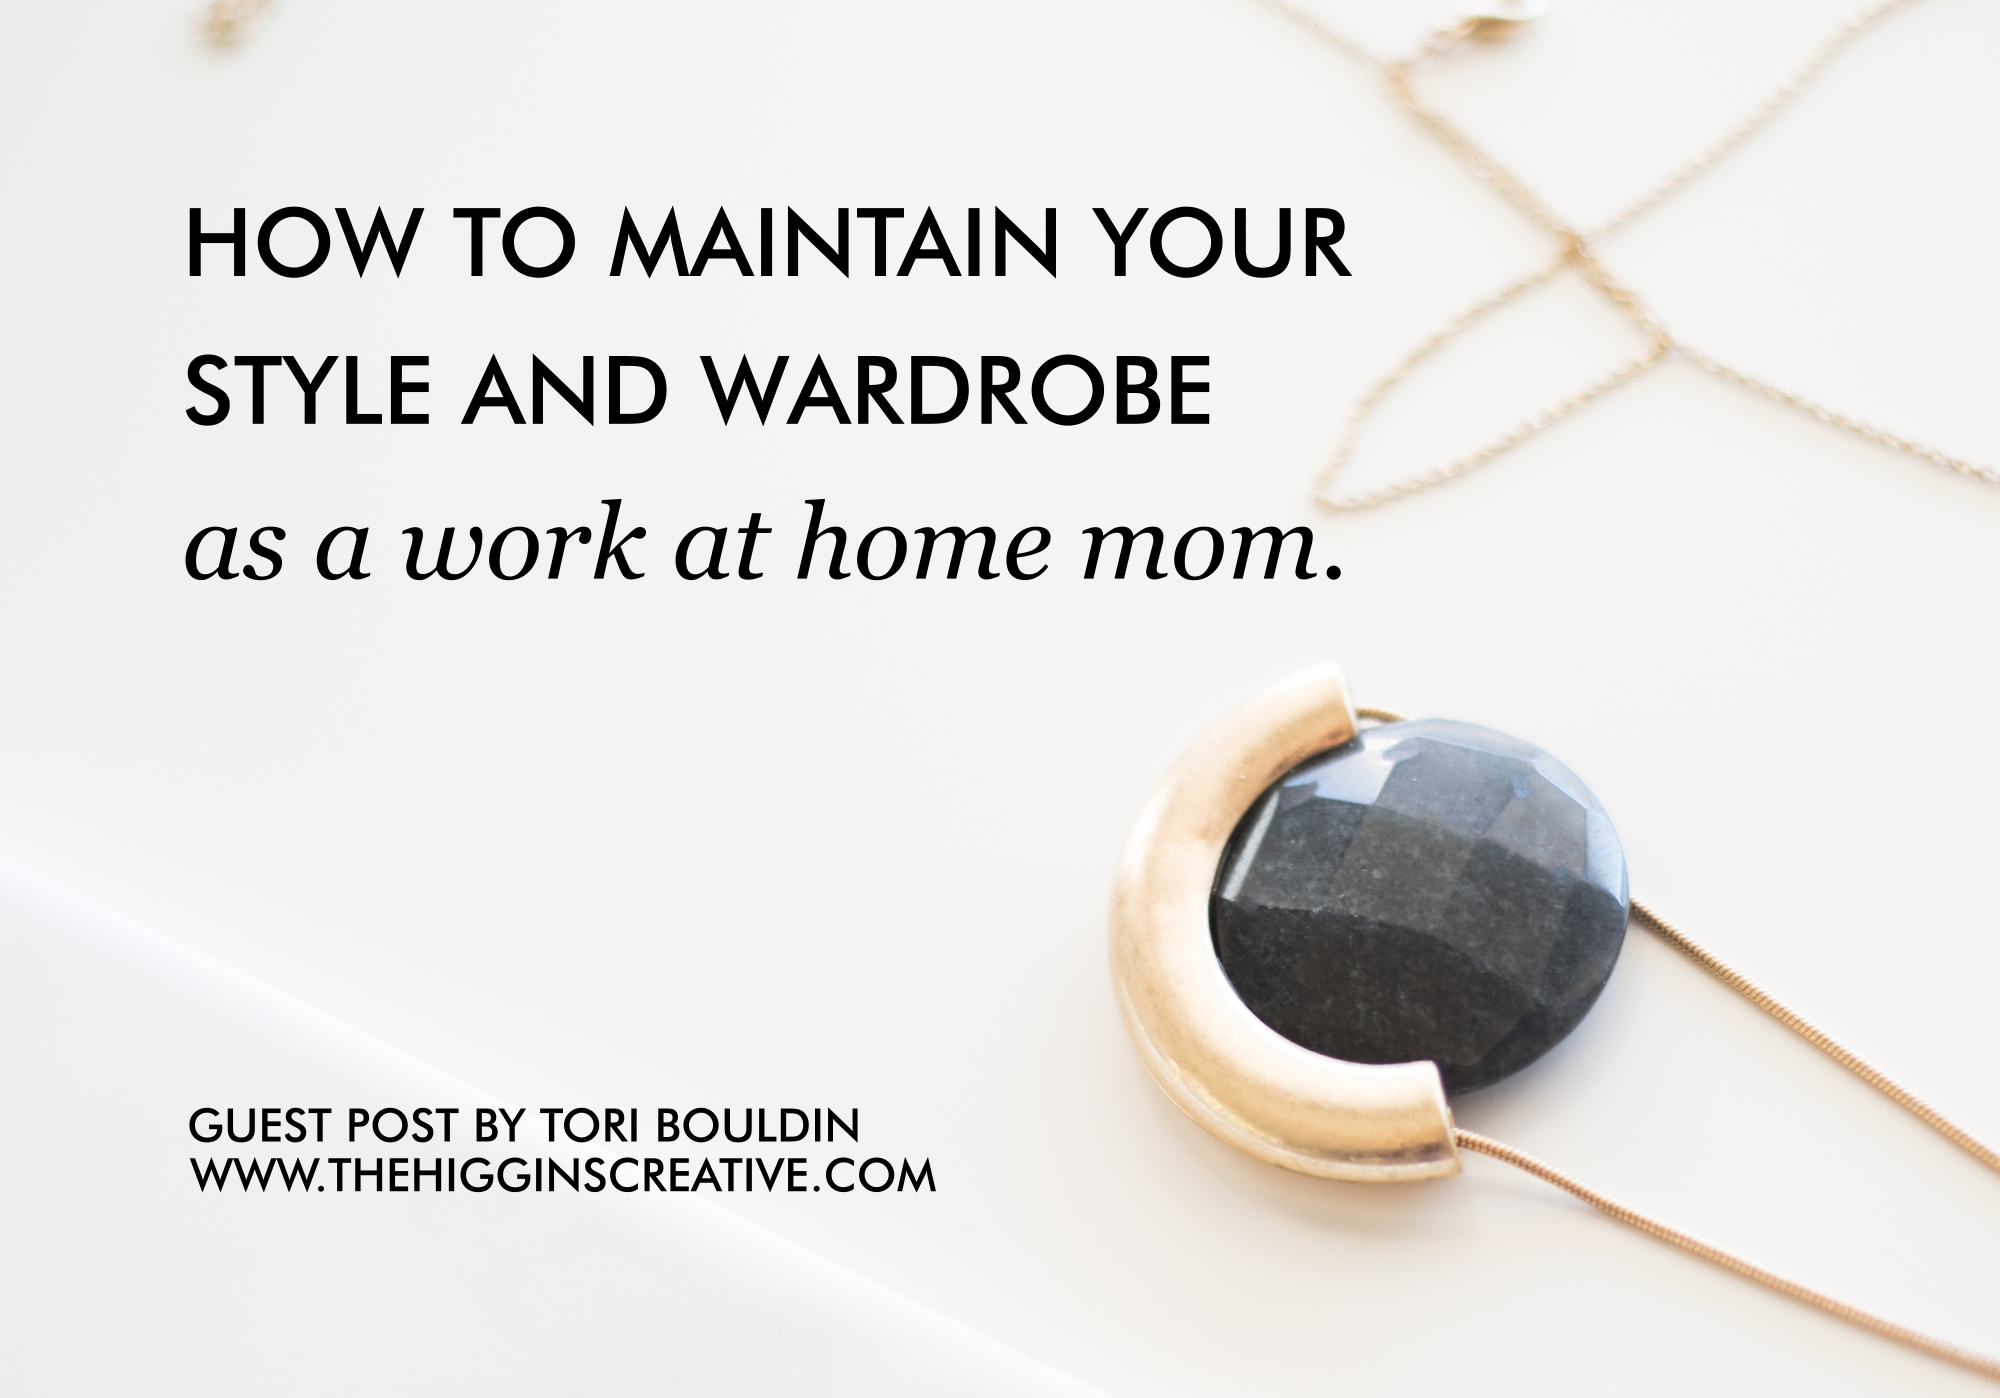 How to Maintain Your Style and Wardrobe As a Work At Home Mom